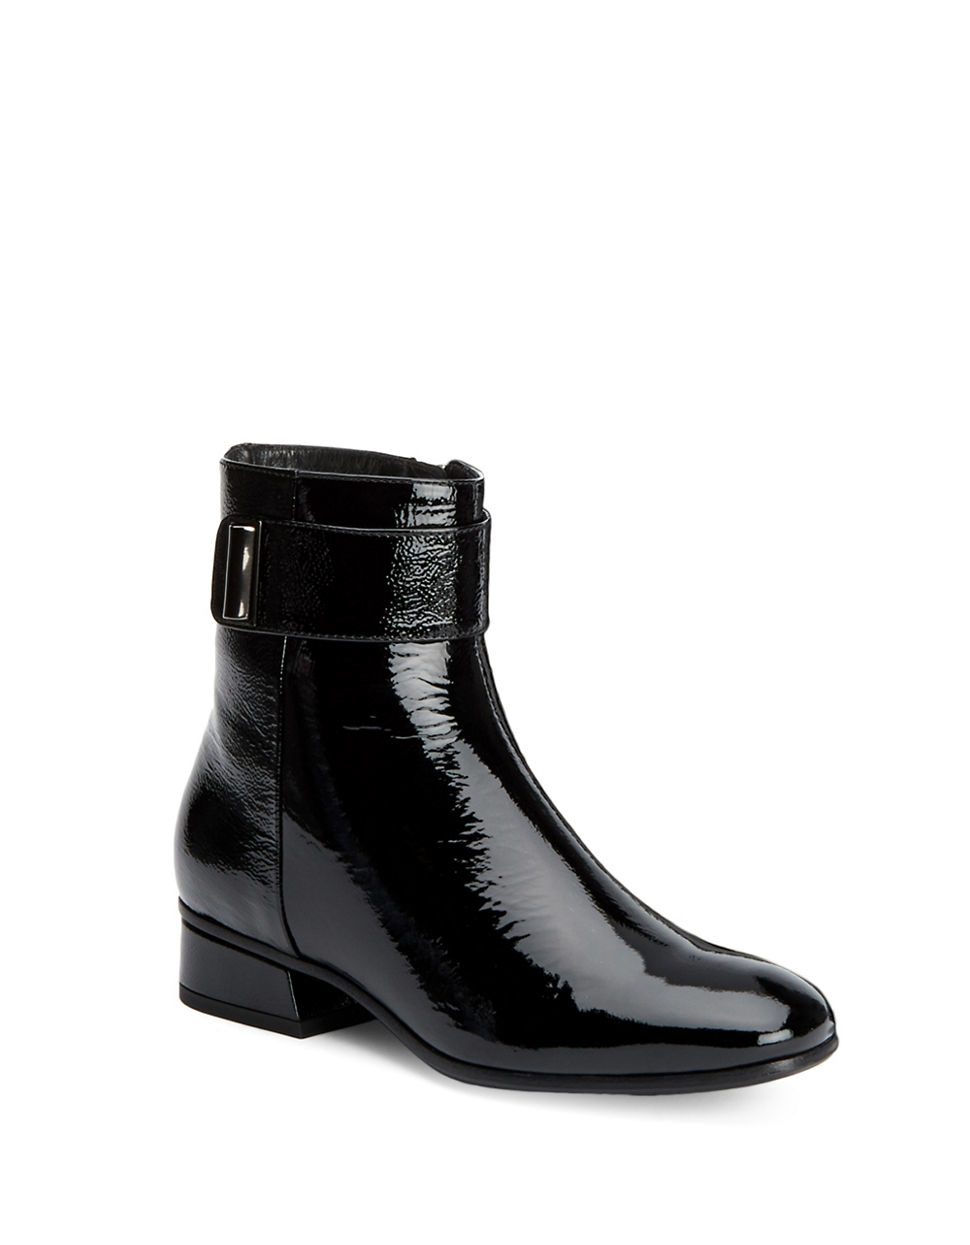 aquatalia lupita patent leather ankle boots in black lyst